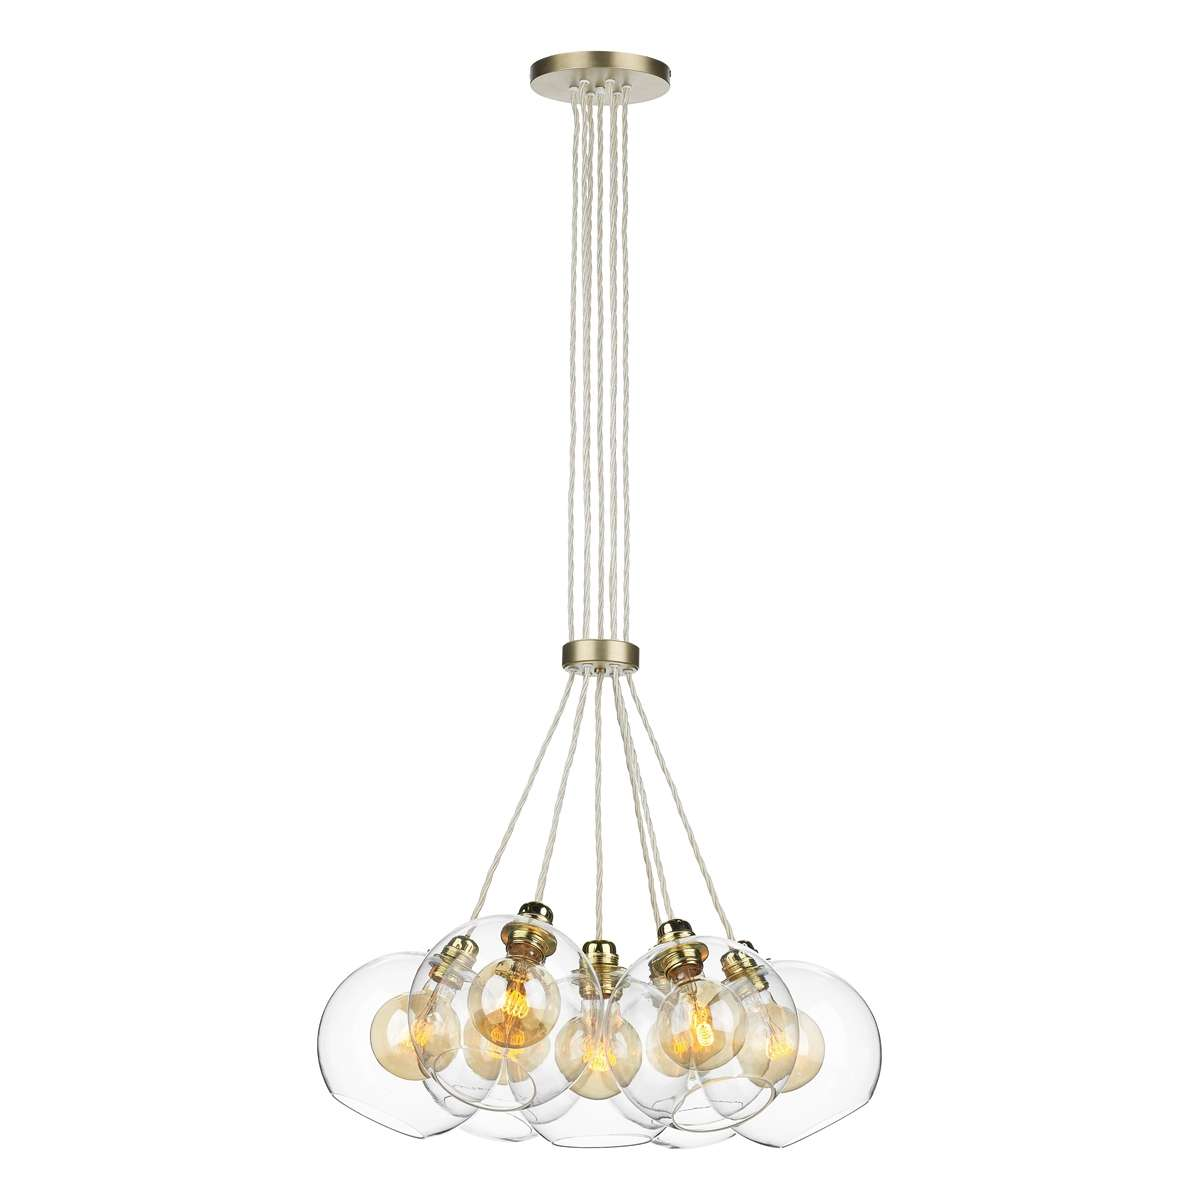 David Hunt Lighting Apo Apollo 7 Light Pendant In